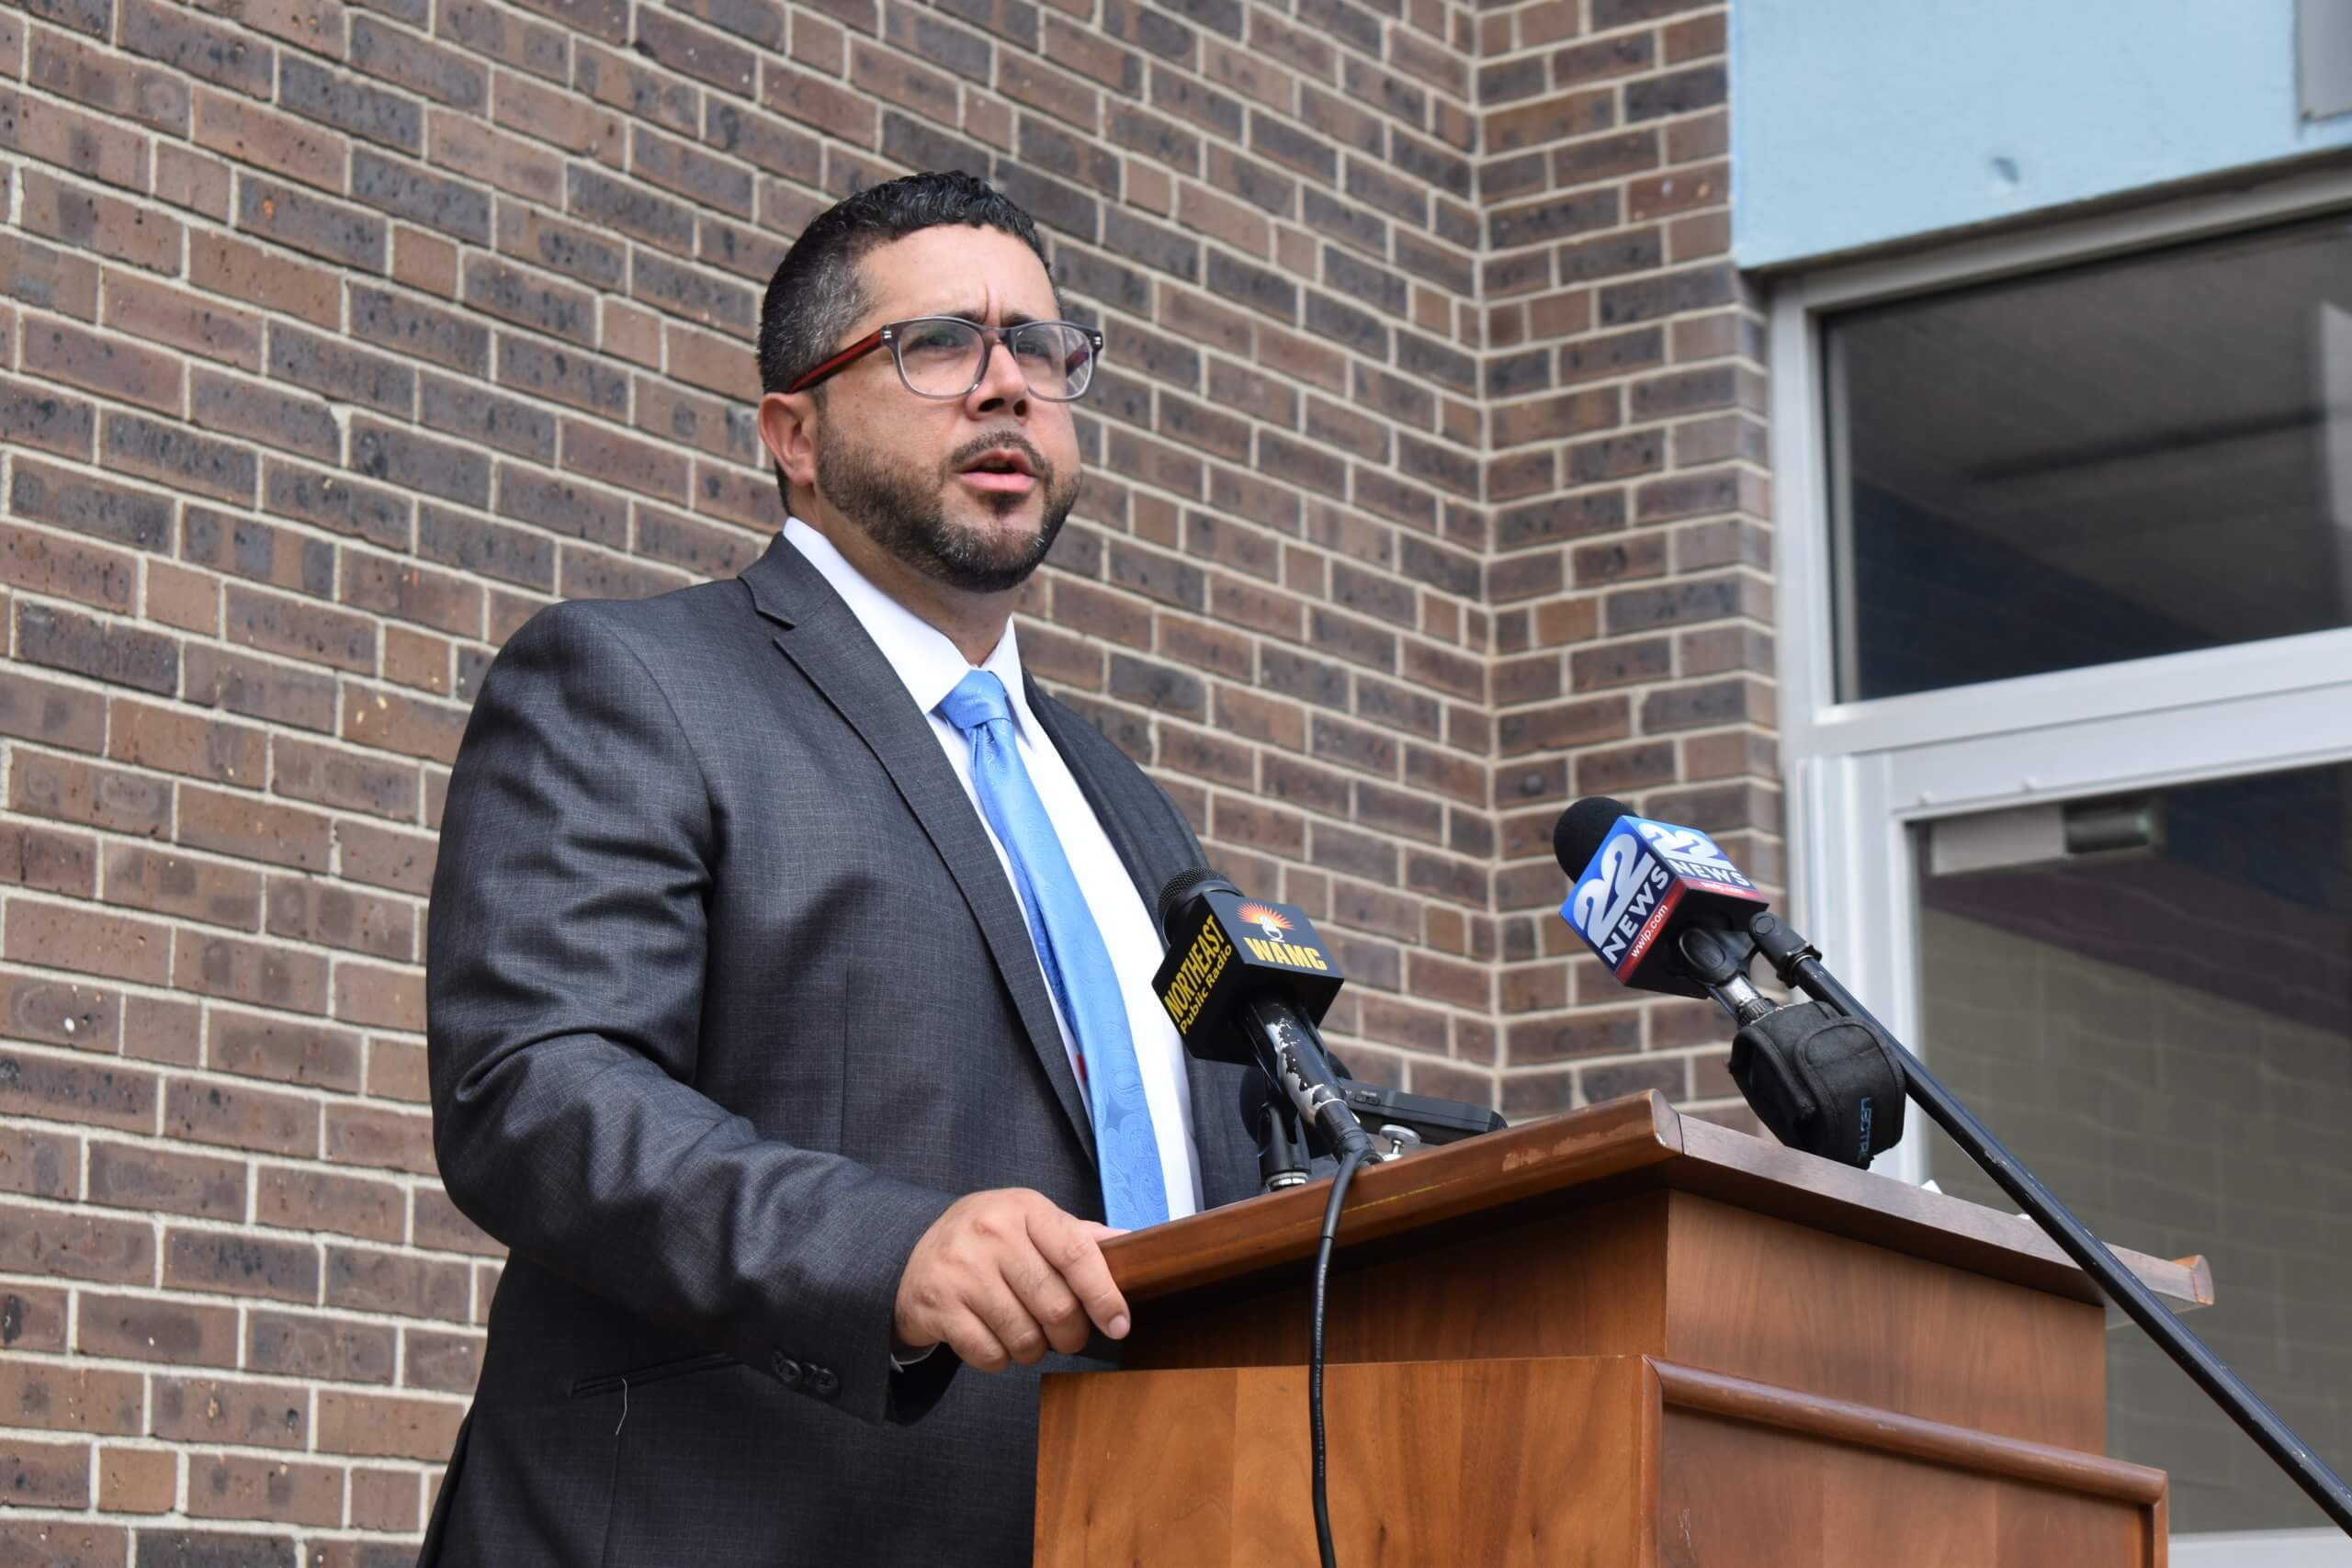 City of Holyoke seeks nominations for School Building Committee